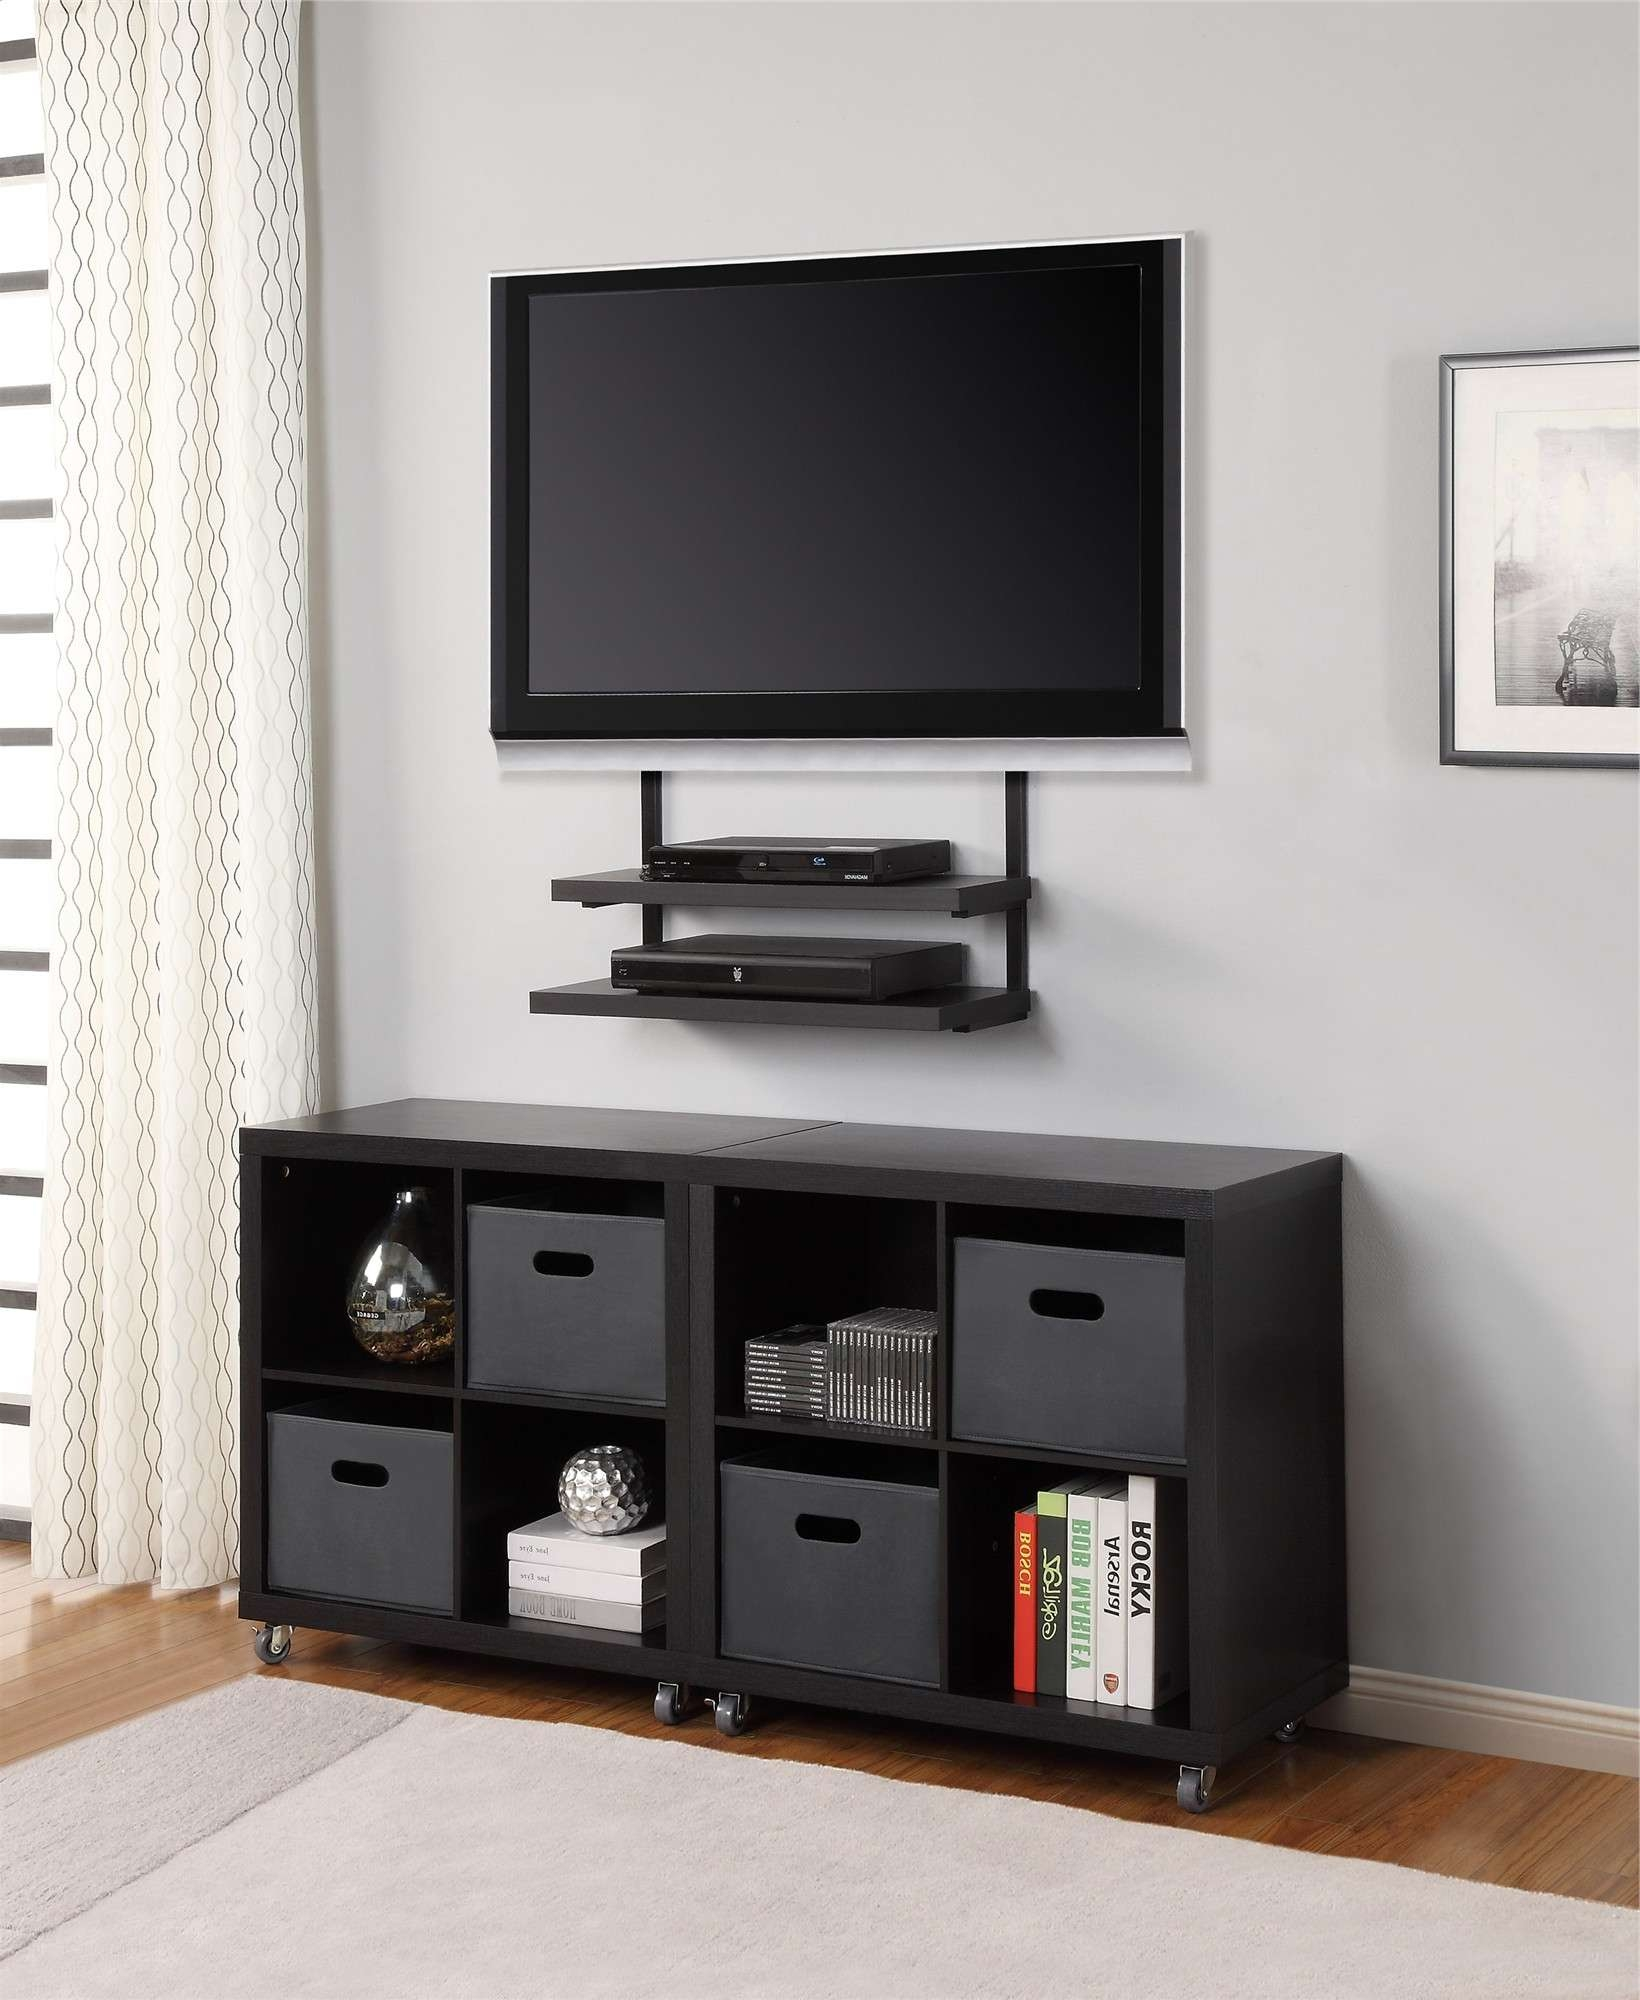 Decoration : 32 Tv Wall Mount Tv Wall Bracket With Dvd Shelf With Wall Mounted Under Tv Cabinets (View 3 of 20)